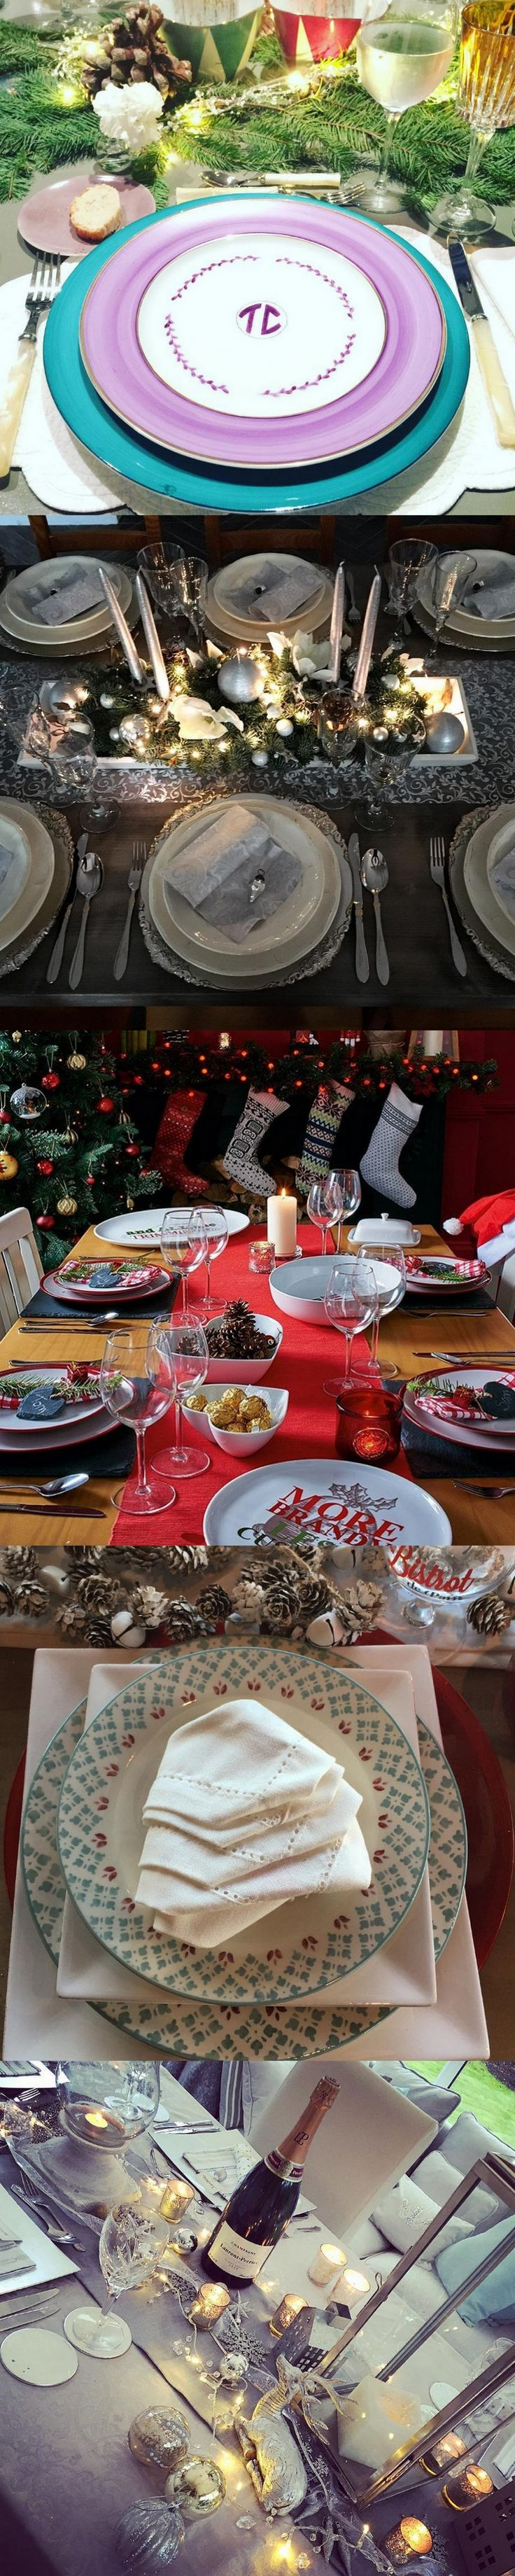 78 images about christmas table decorations on pinterest for Modern christmas table settings ideas